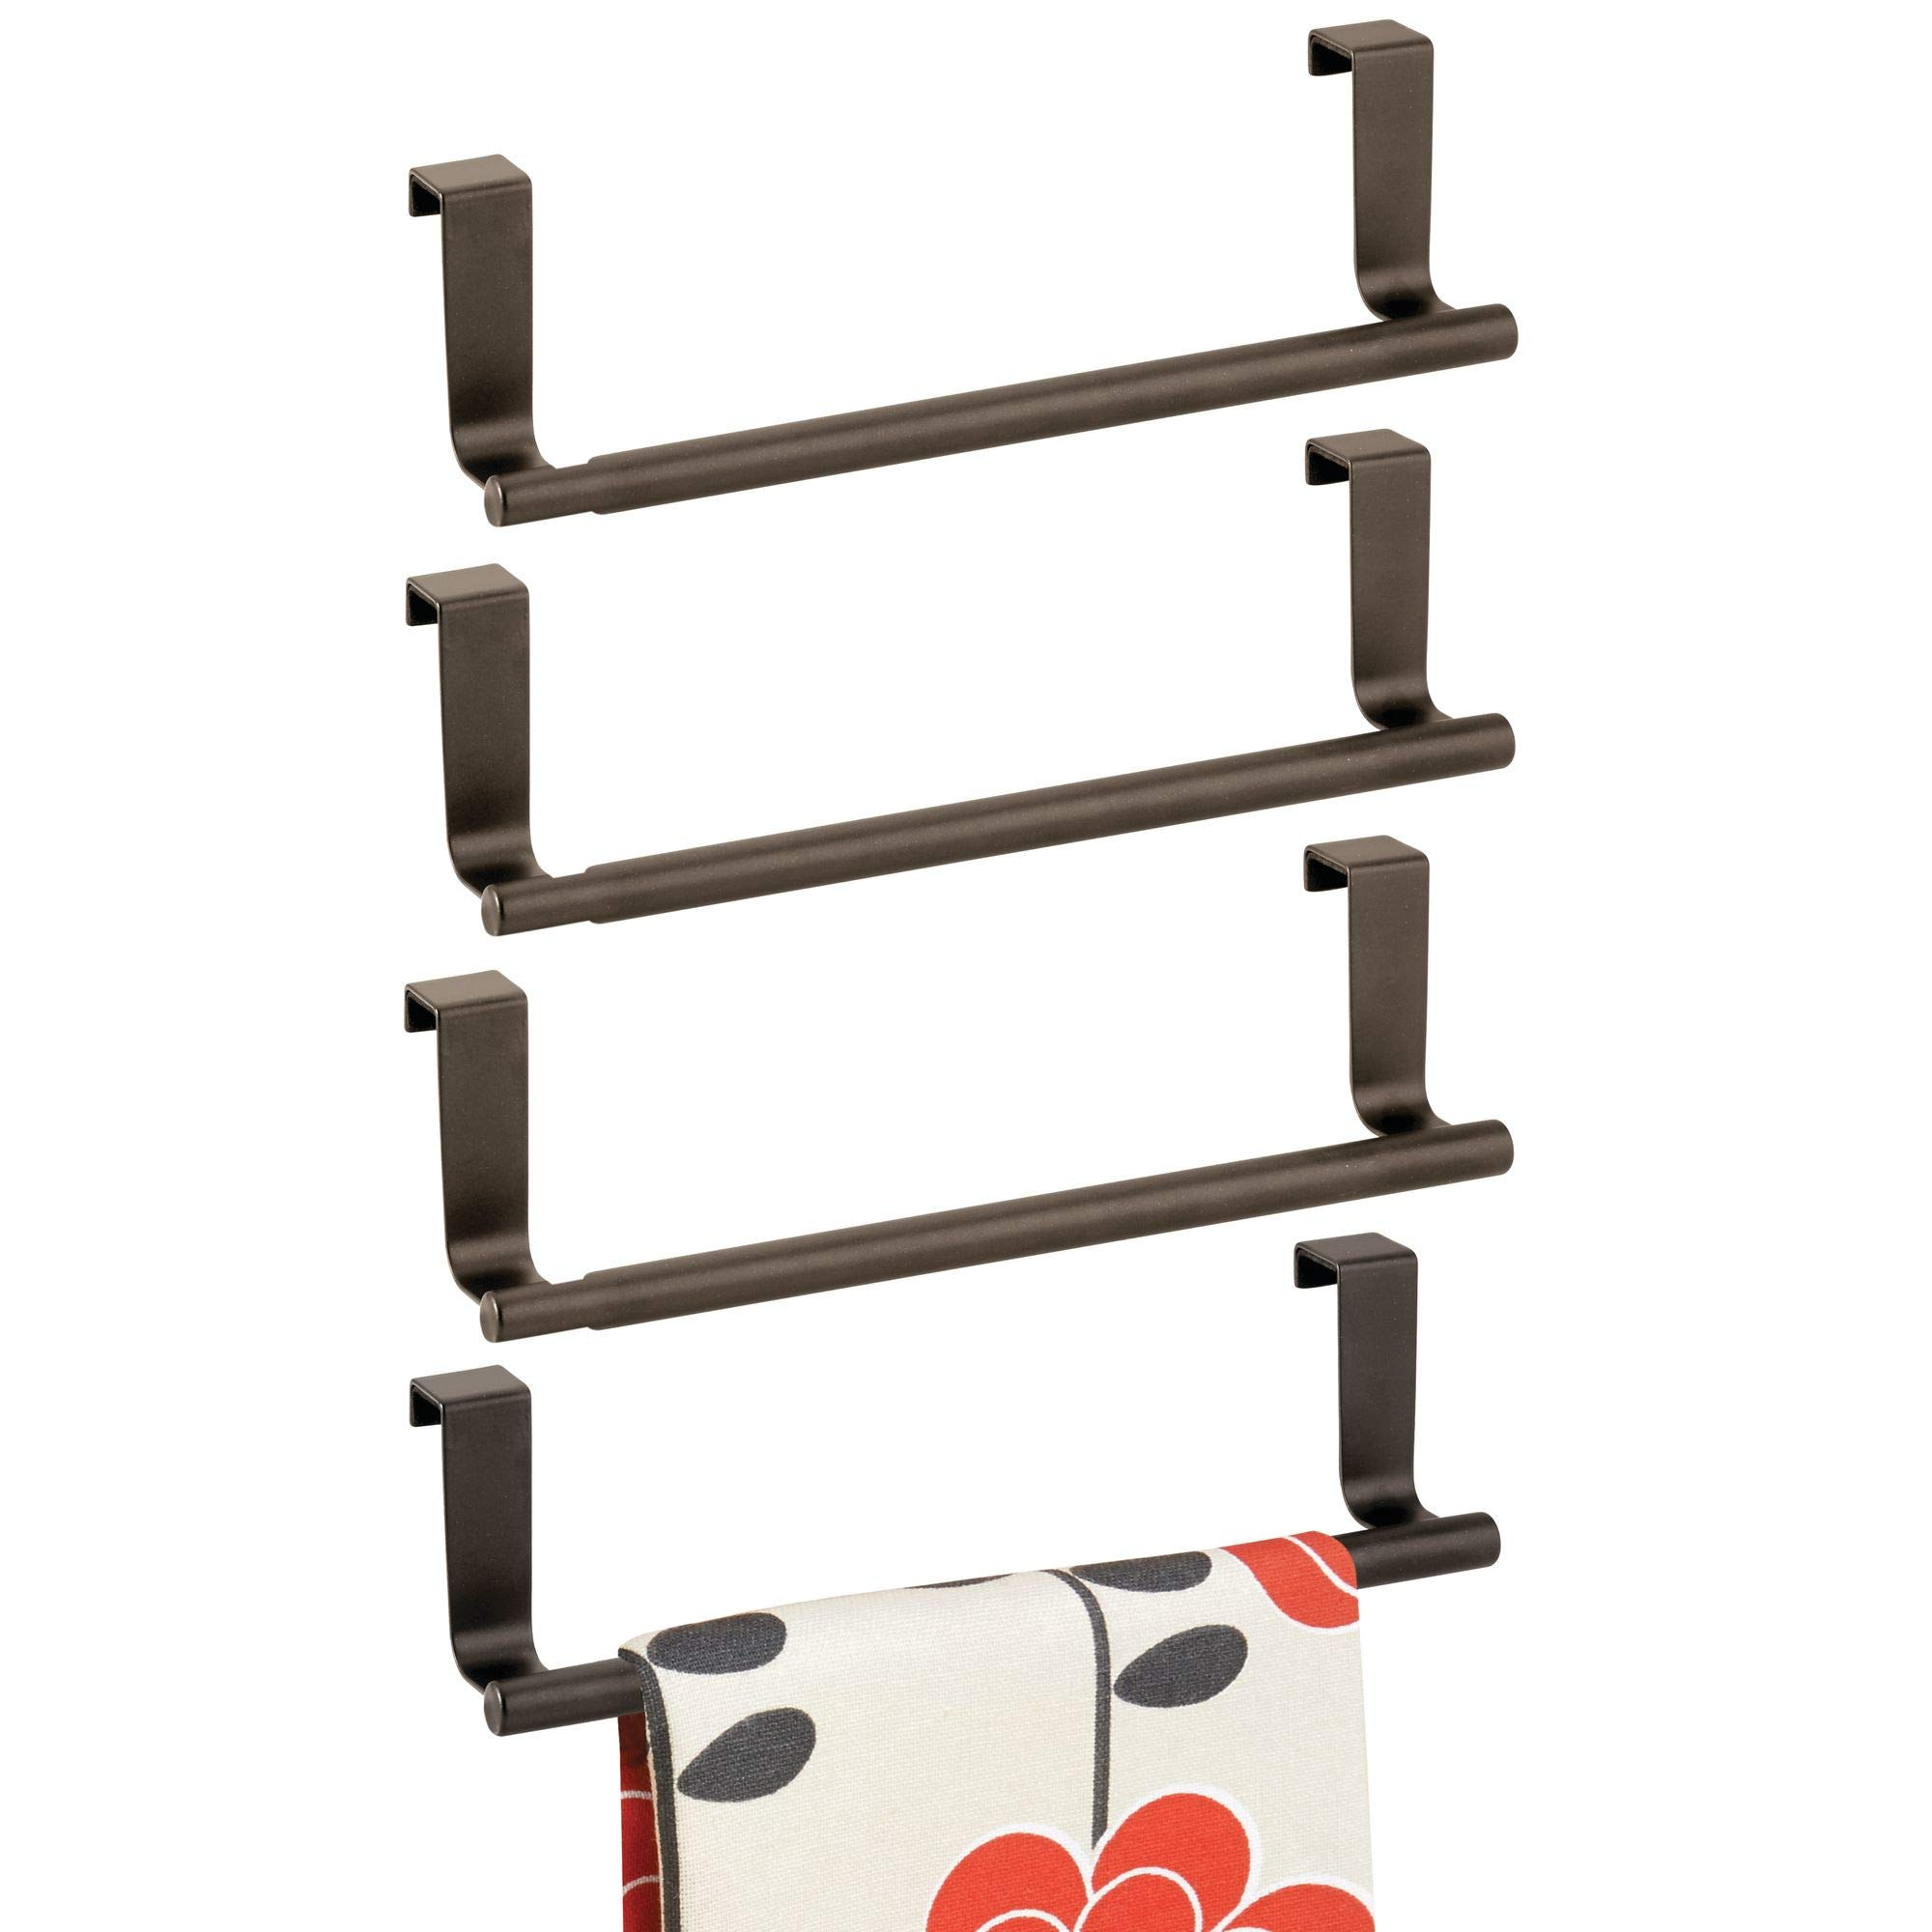 mDesign Decorative Kitchen Over Cabinet Stainless Steel Towel Bar - Hang on Inside or Outside of Doors, Storage and Display Rack for Hand, Dish, and Tea Towels - 9'' Wide, Pack of 4, Bronze